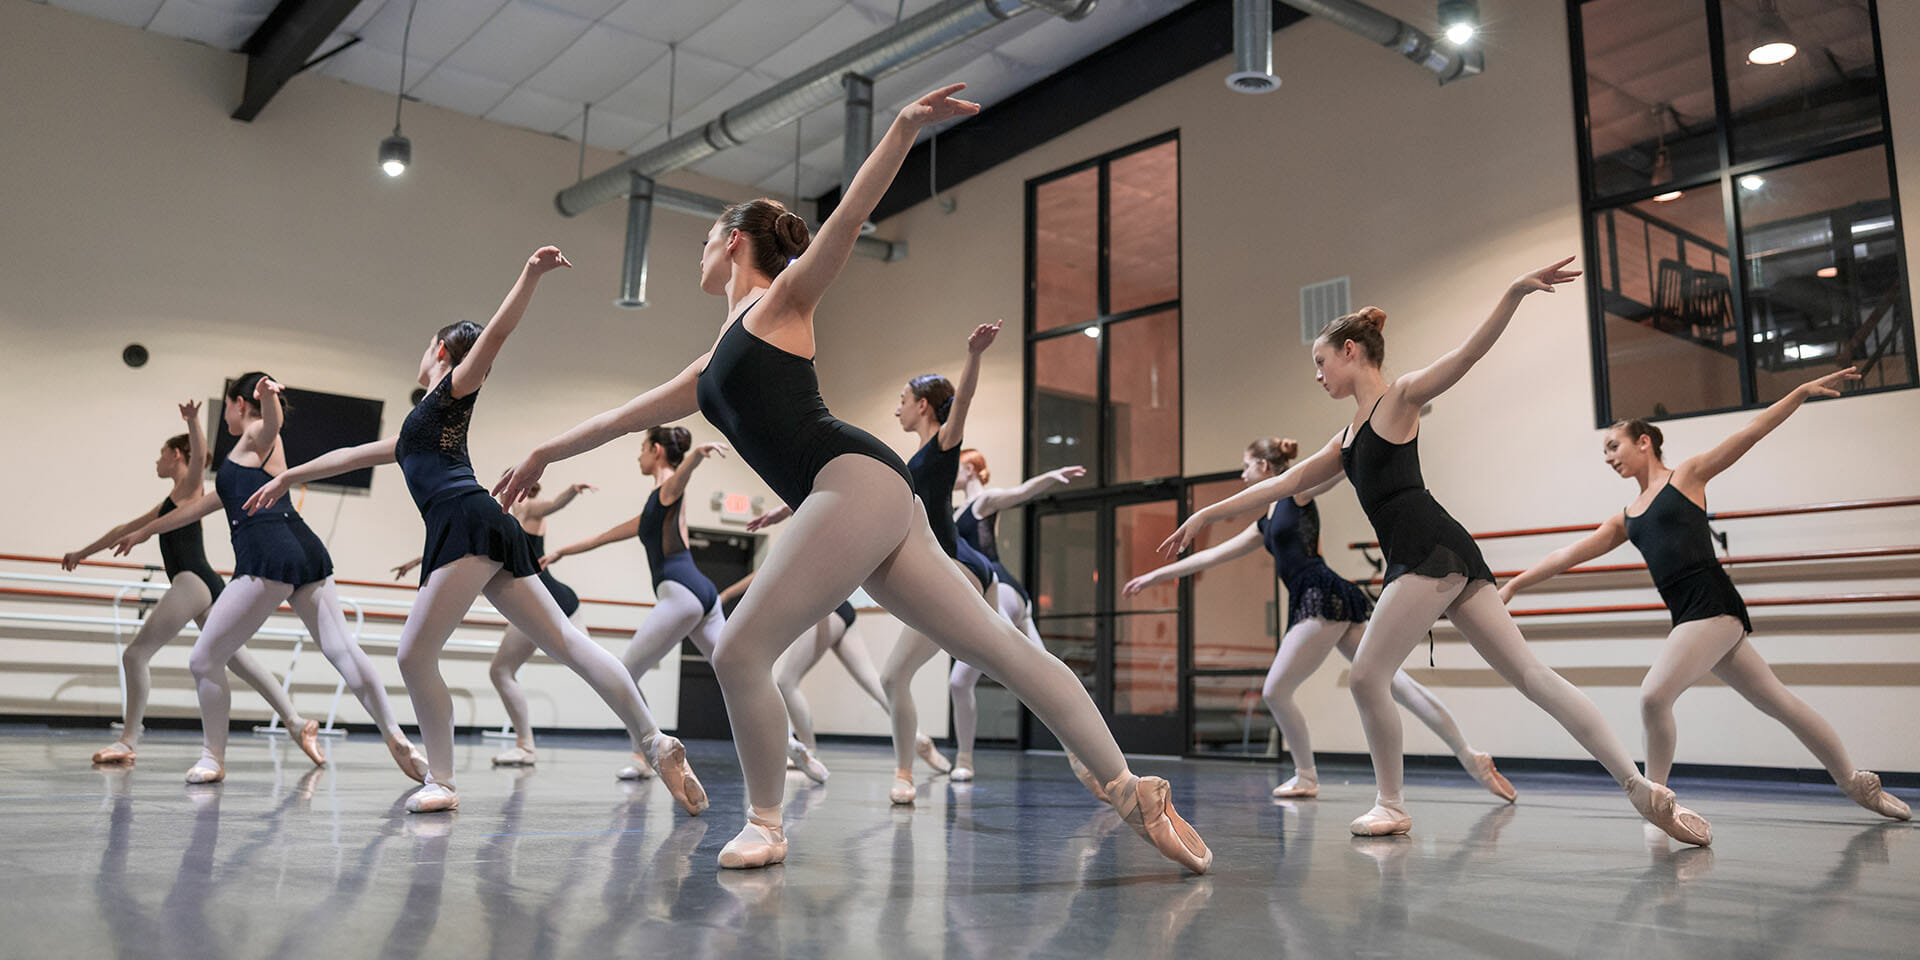 Free trial dance class ballet instruction Northern Virginia - group of ballerinas holding pose